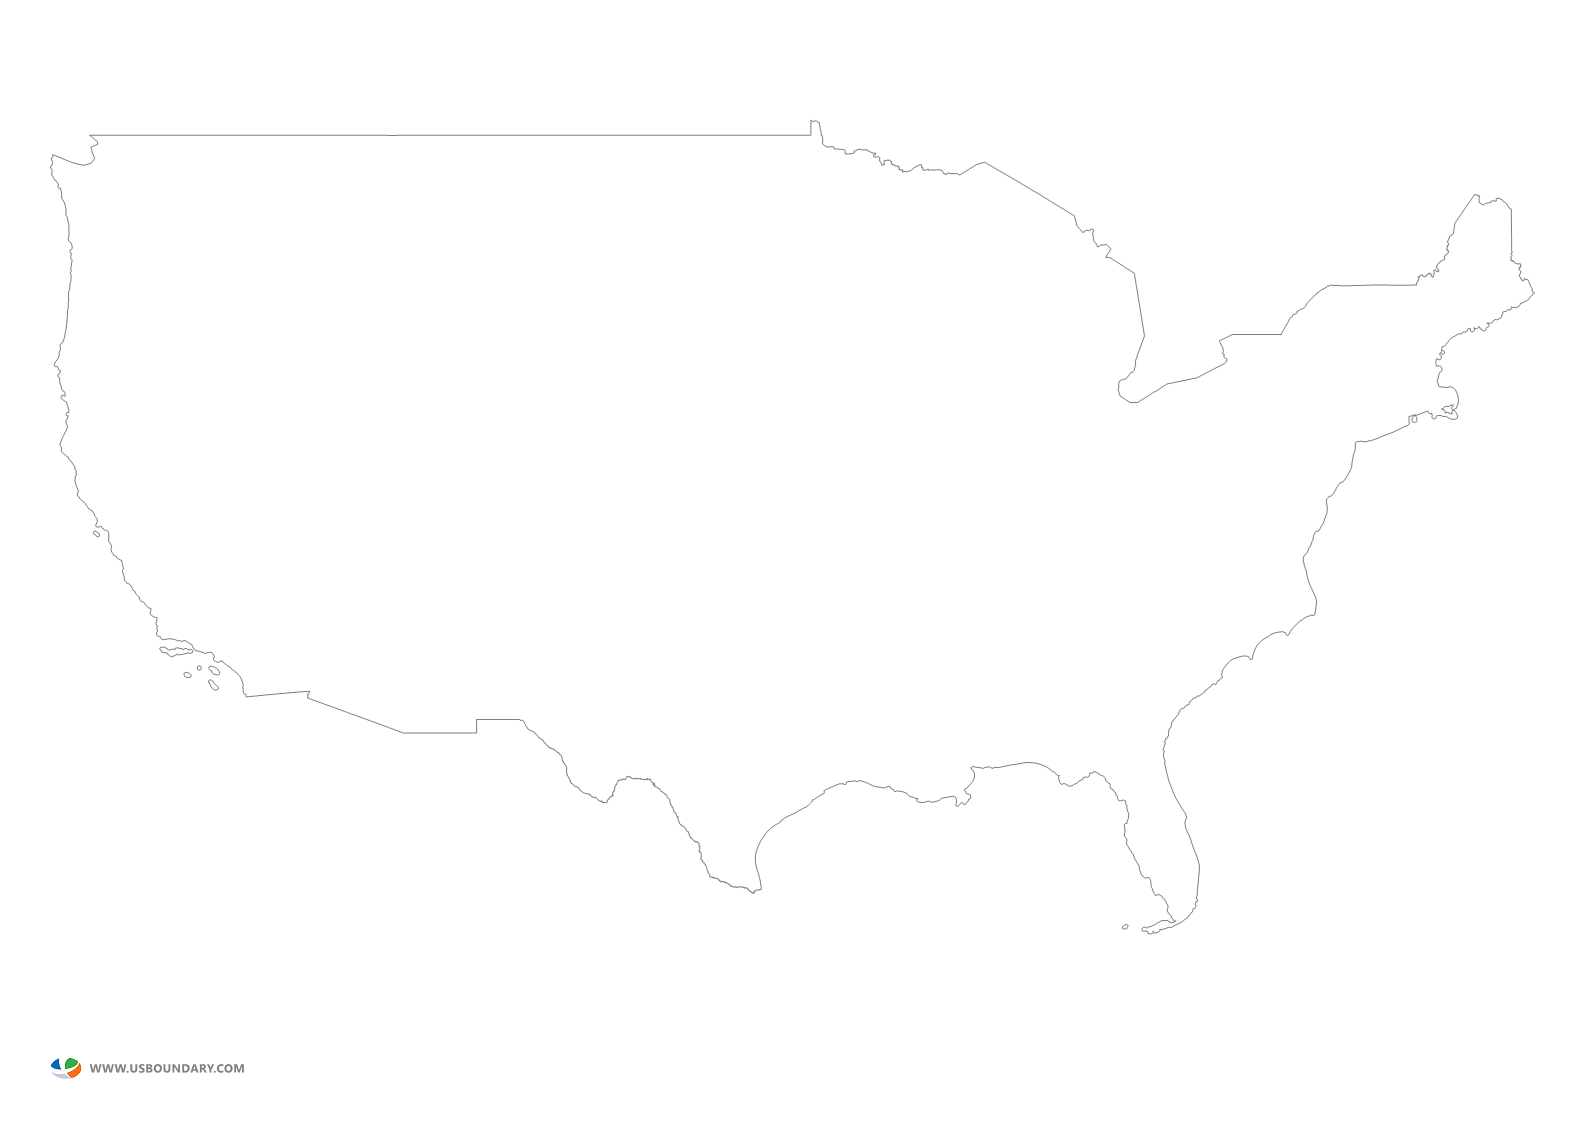 United states map outline png. Maps download mainland ouline